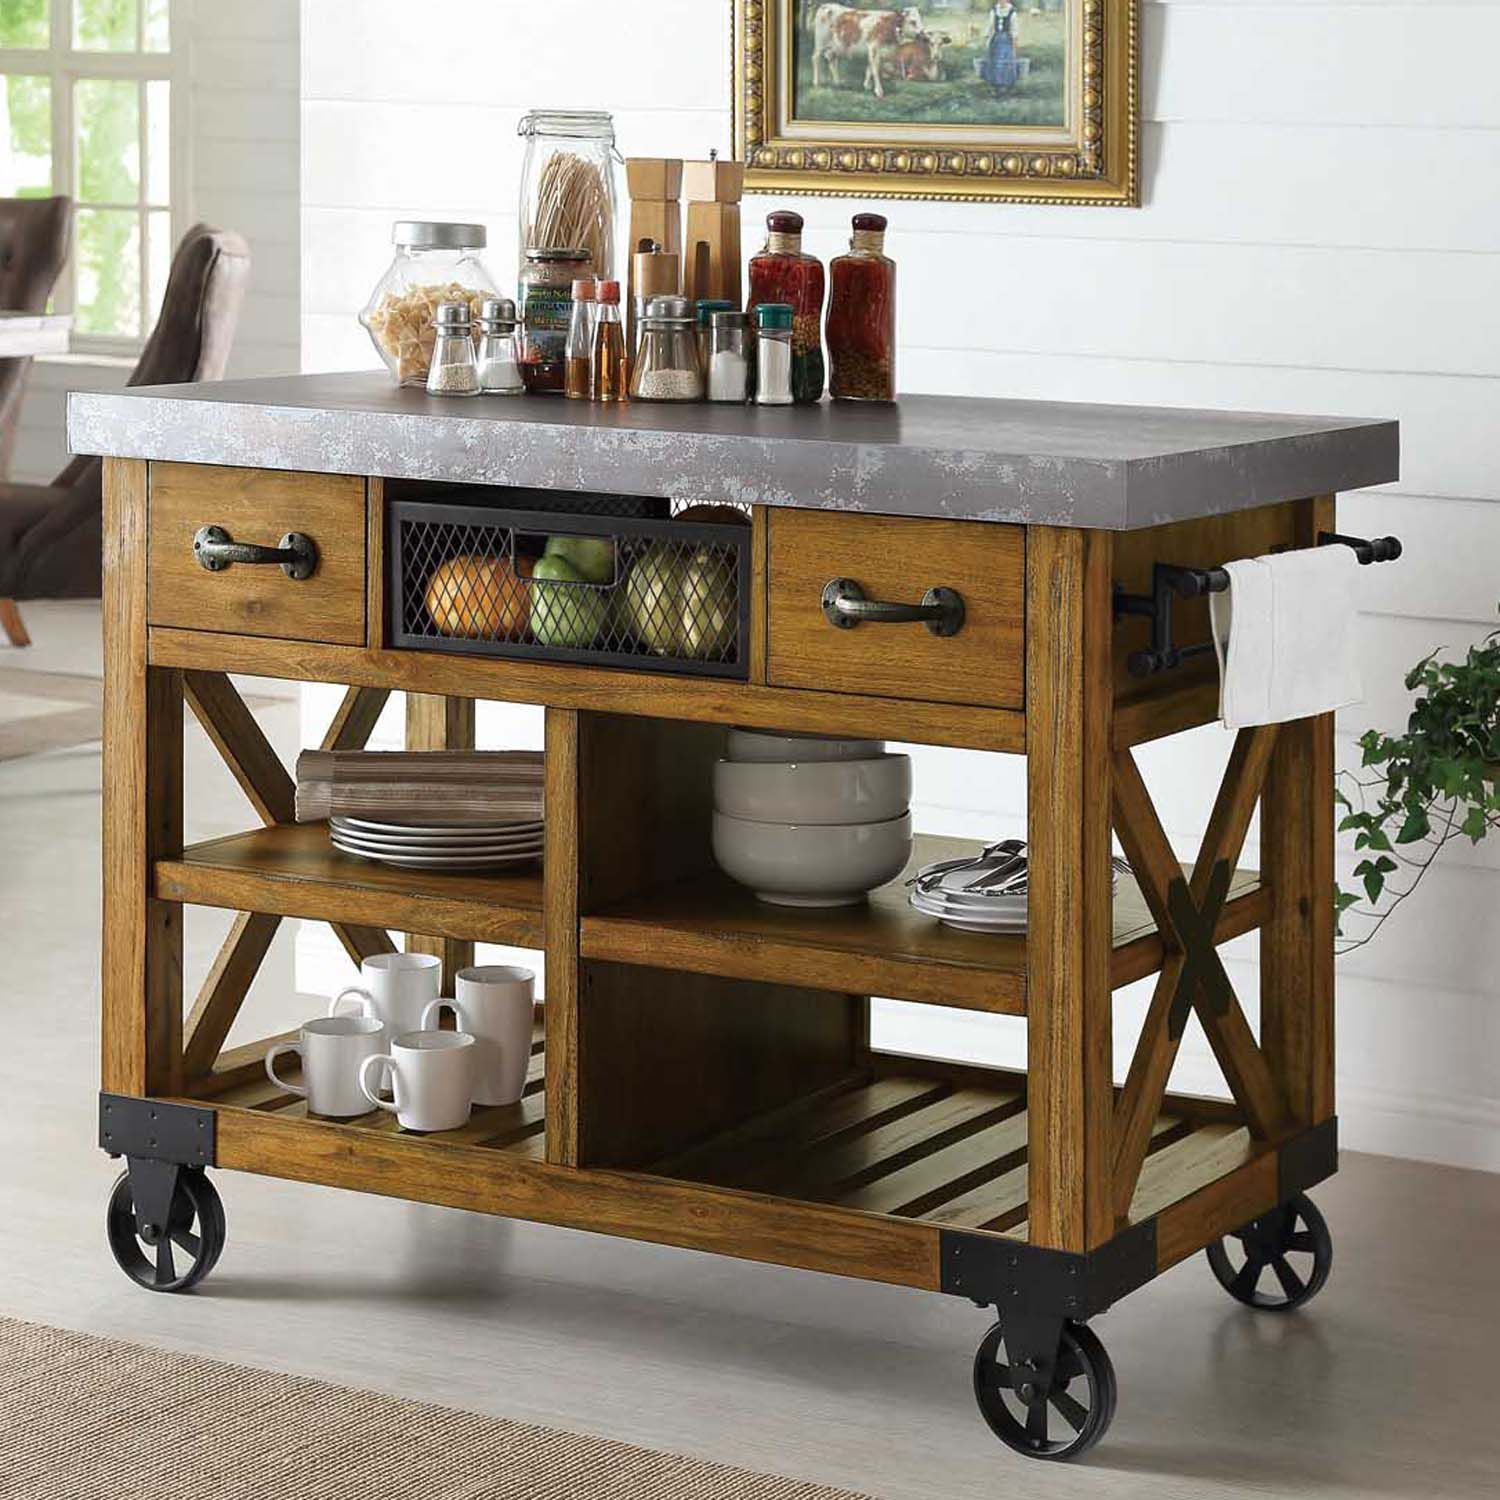 Rachel Serving Cart - Sam\'s Club | Home decor | Pinterest | Küche ...